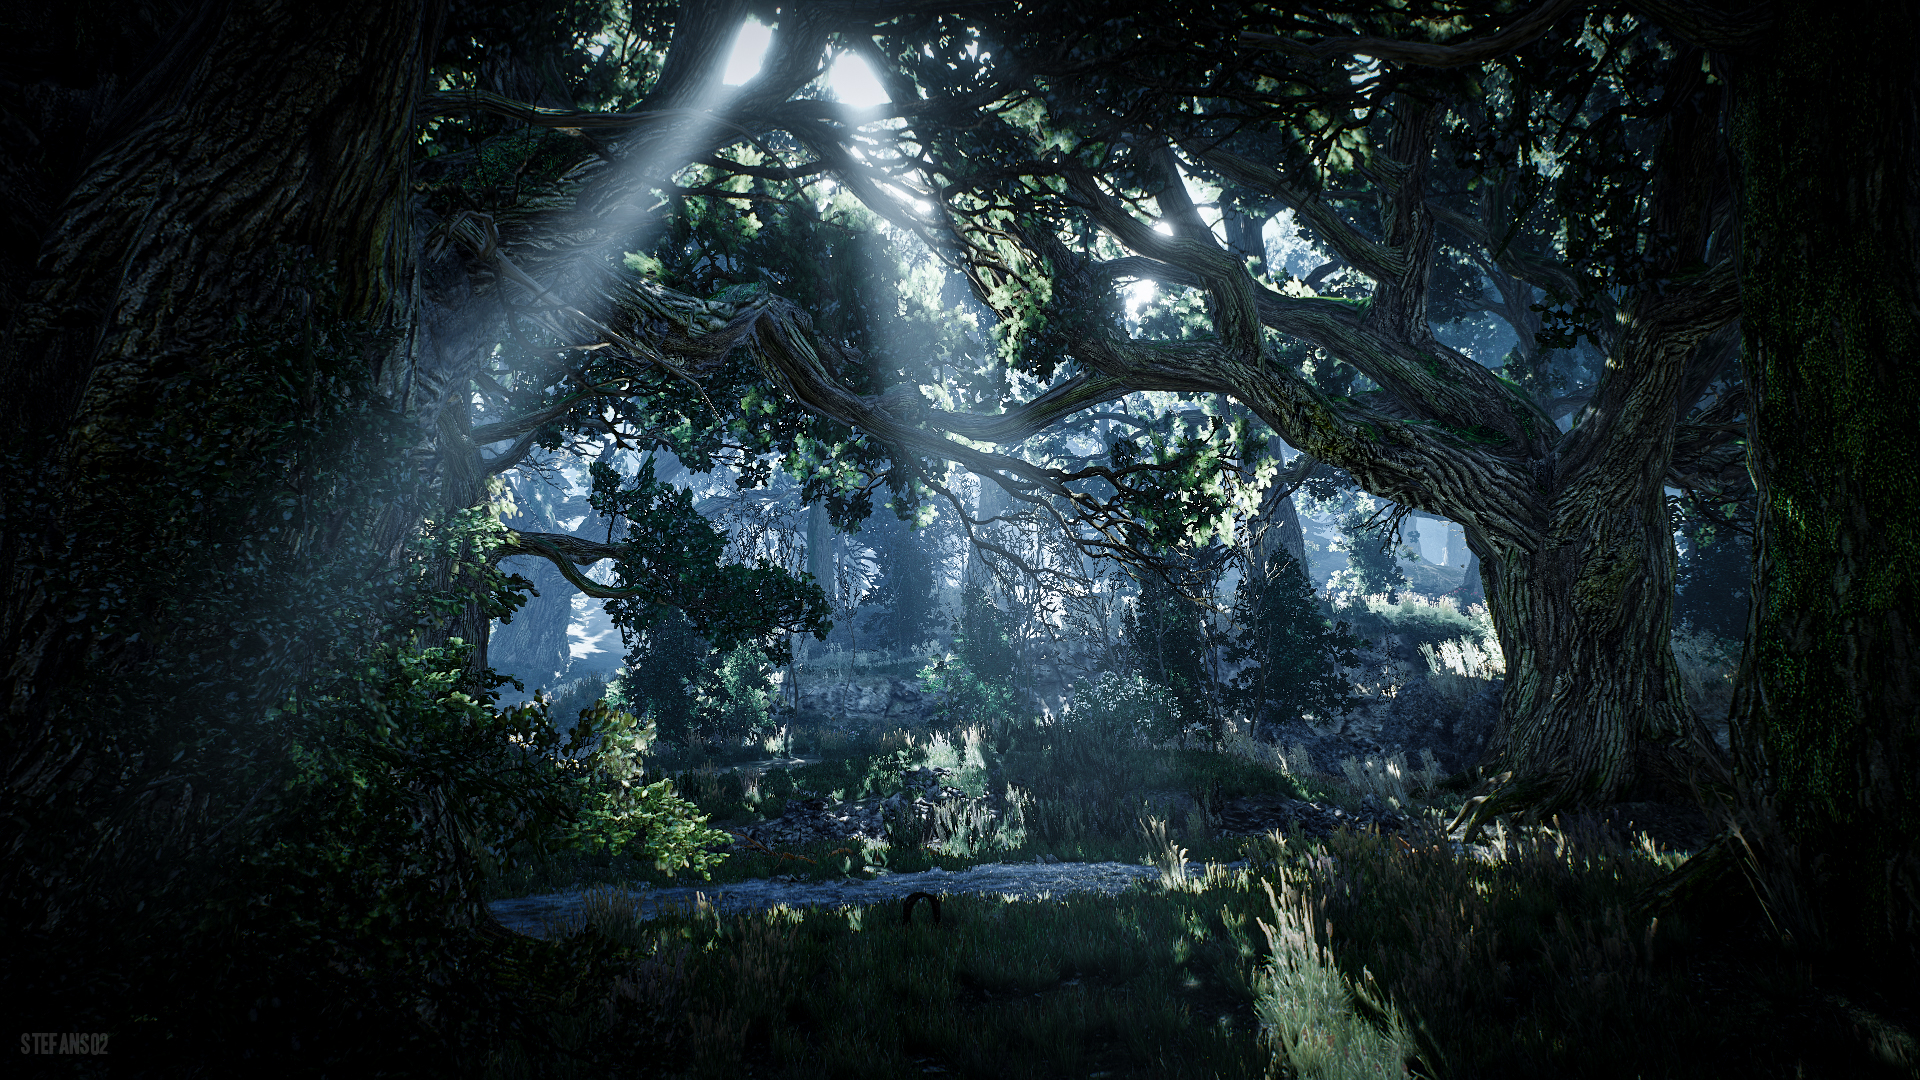 the witcher 3 wild hunt skellige forest hd wallpaper backgroundthe witcher 3 wild hunt skellige forest